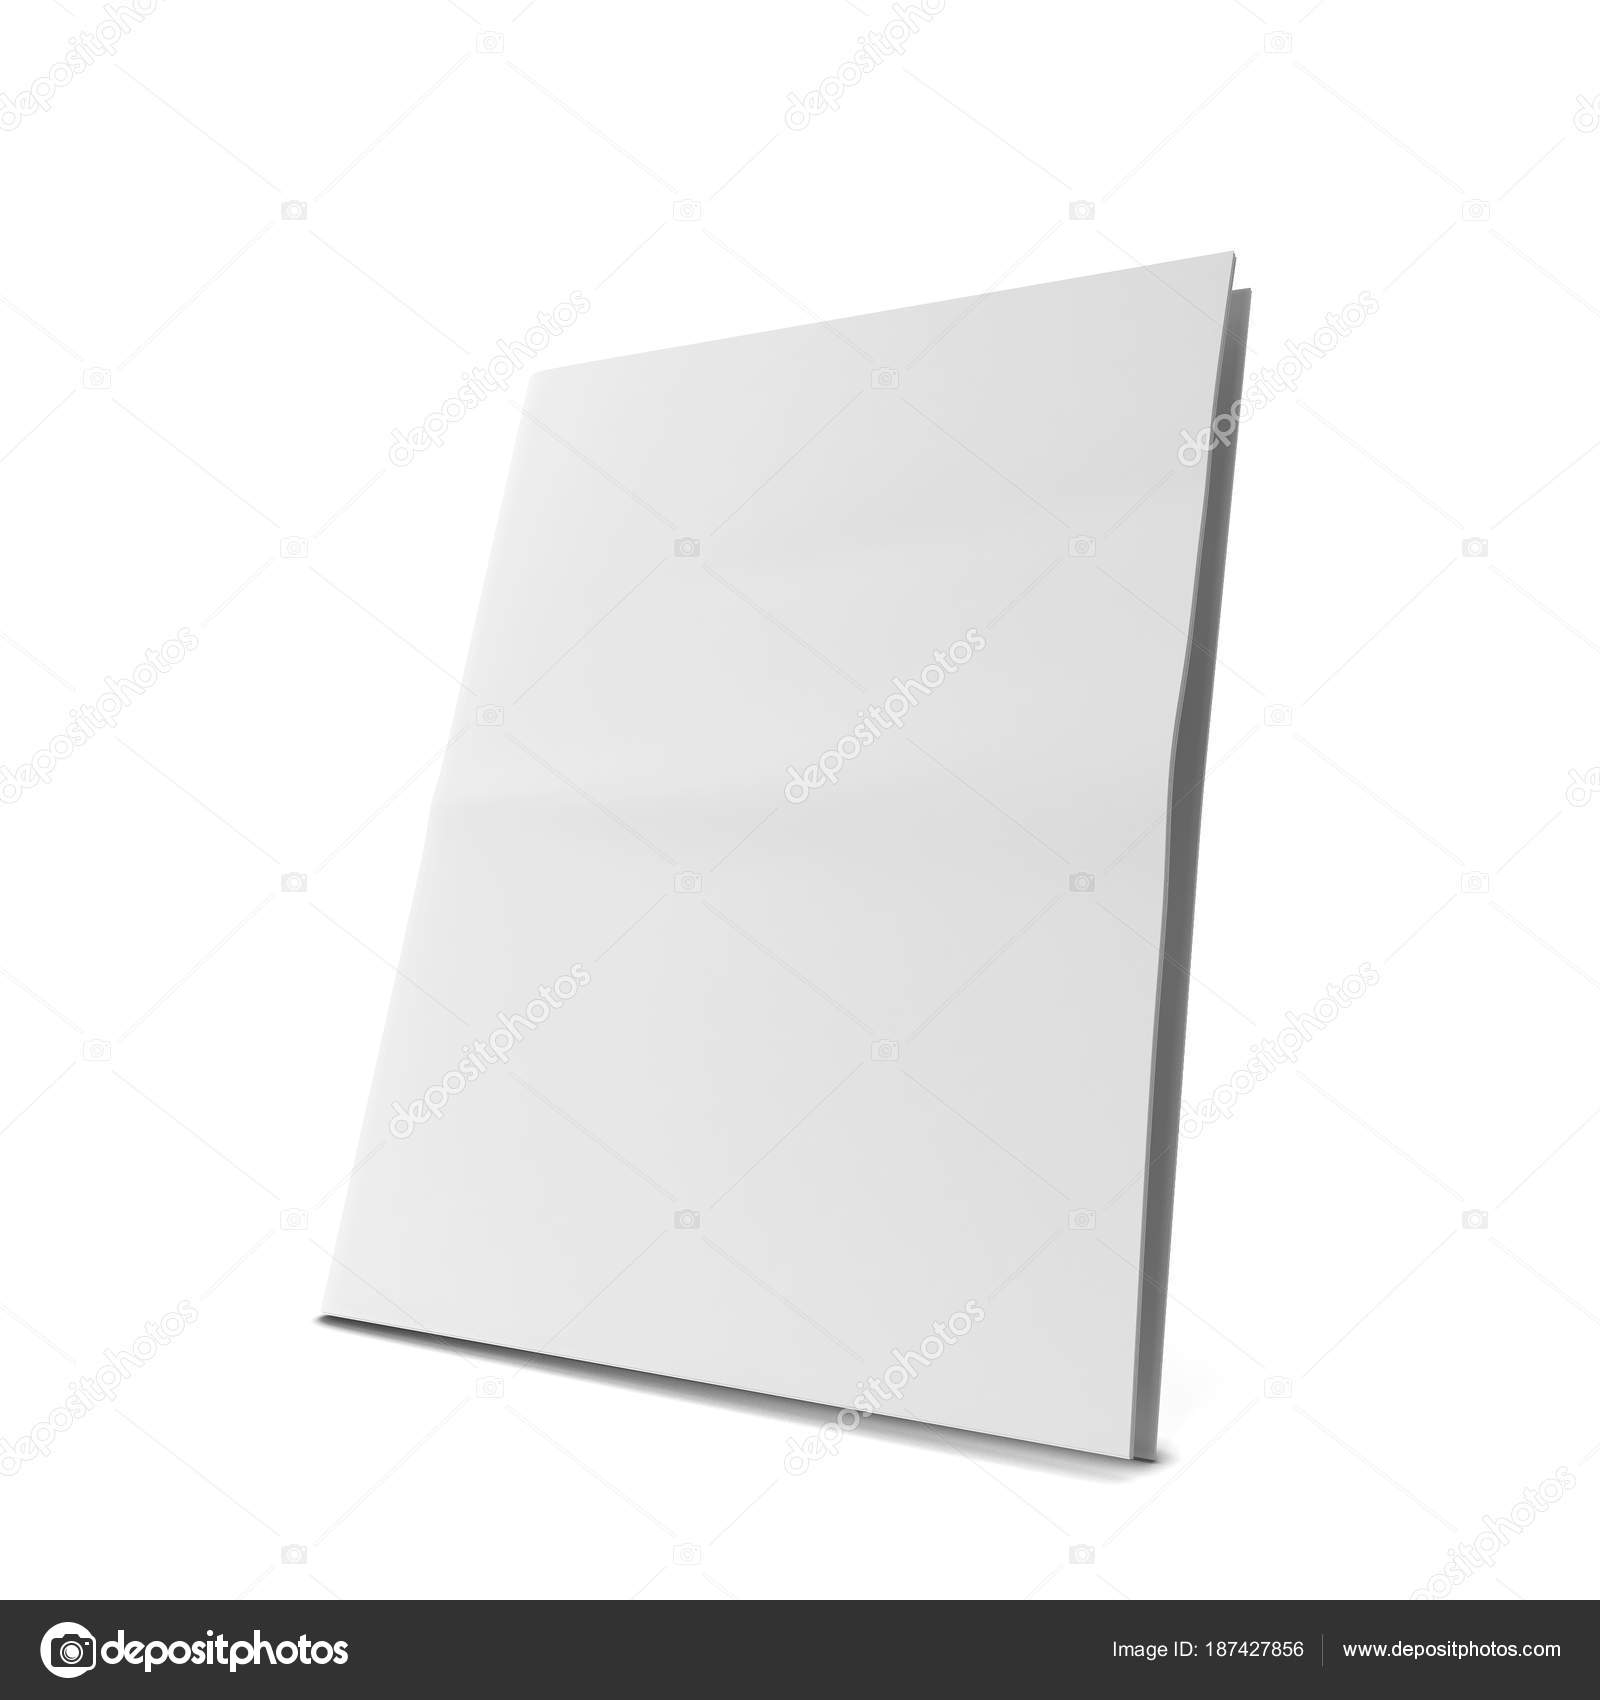 Blank Newspaper Template Stock Photo C Montego 187427856